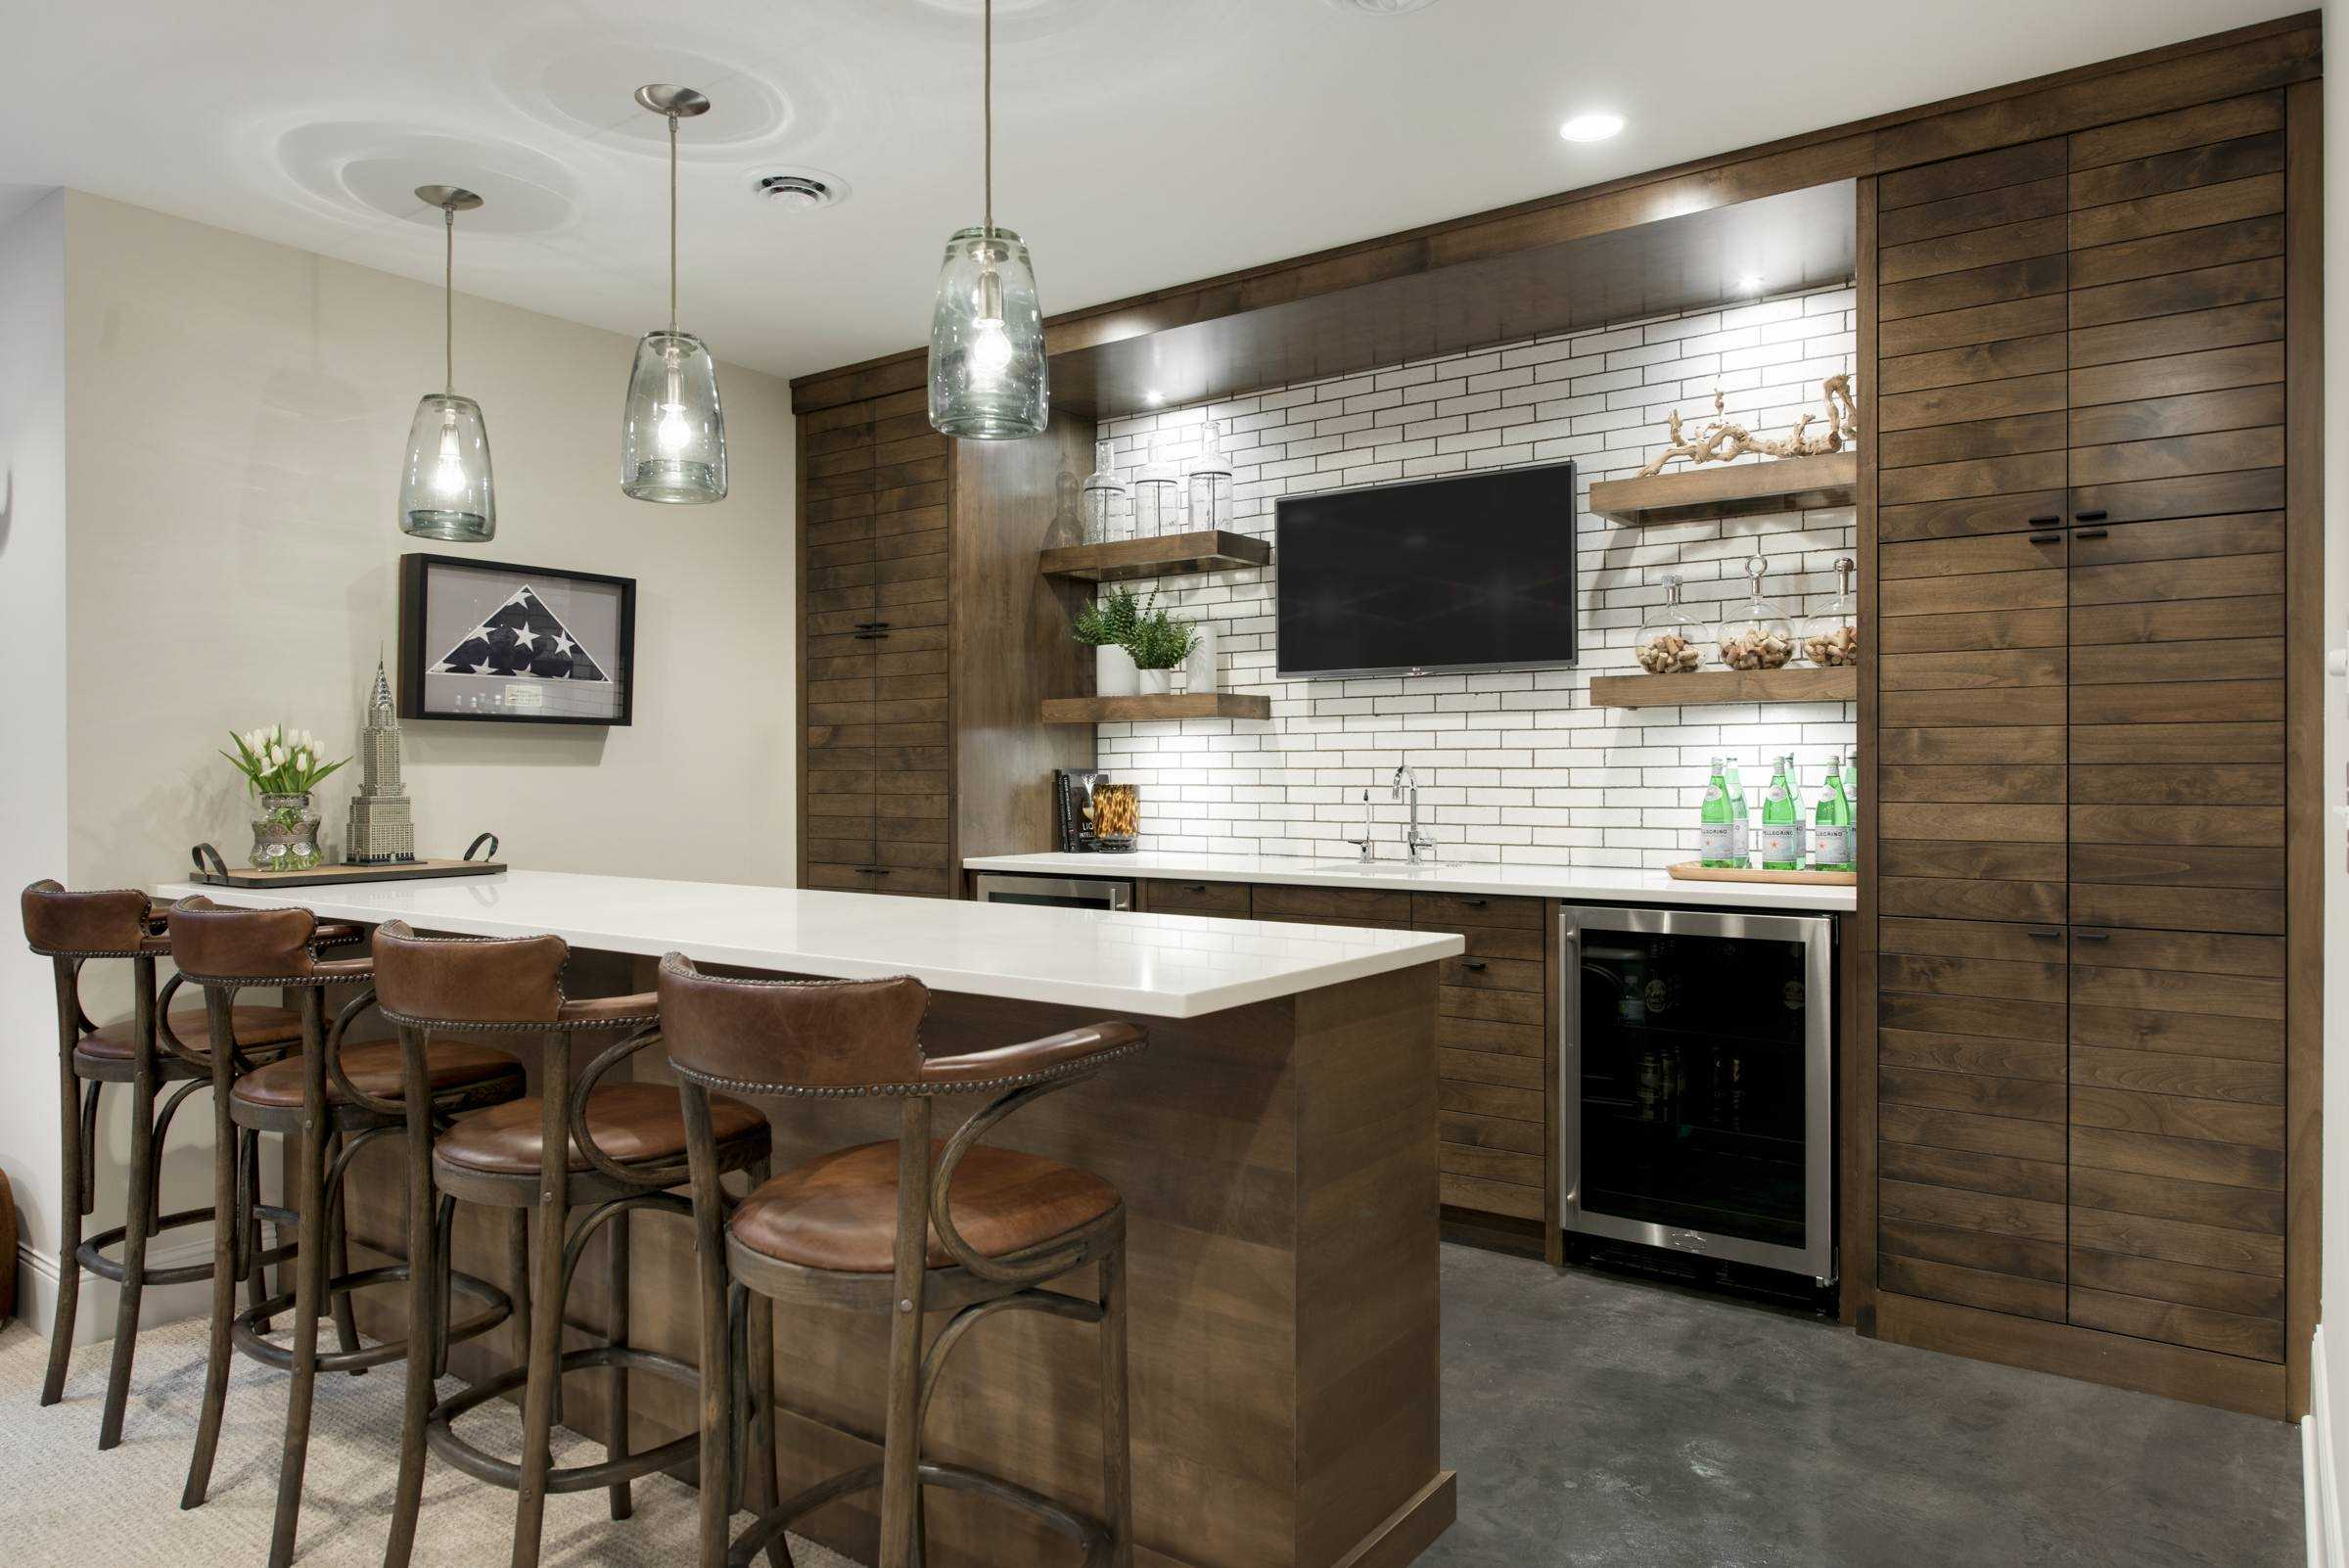 Perfect 15 Distinguished Rustic Home Bar Designs For When You Really Need That Drink